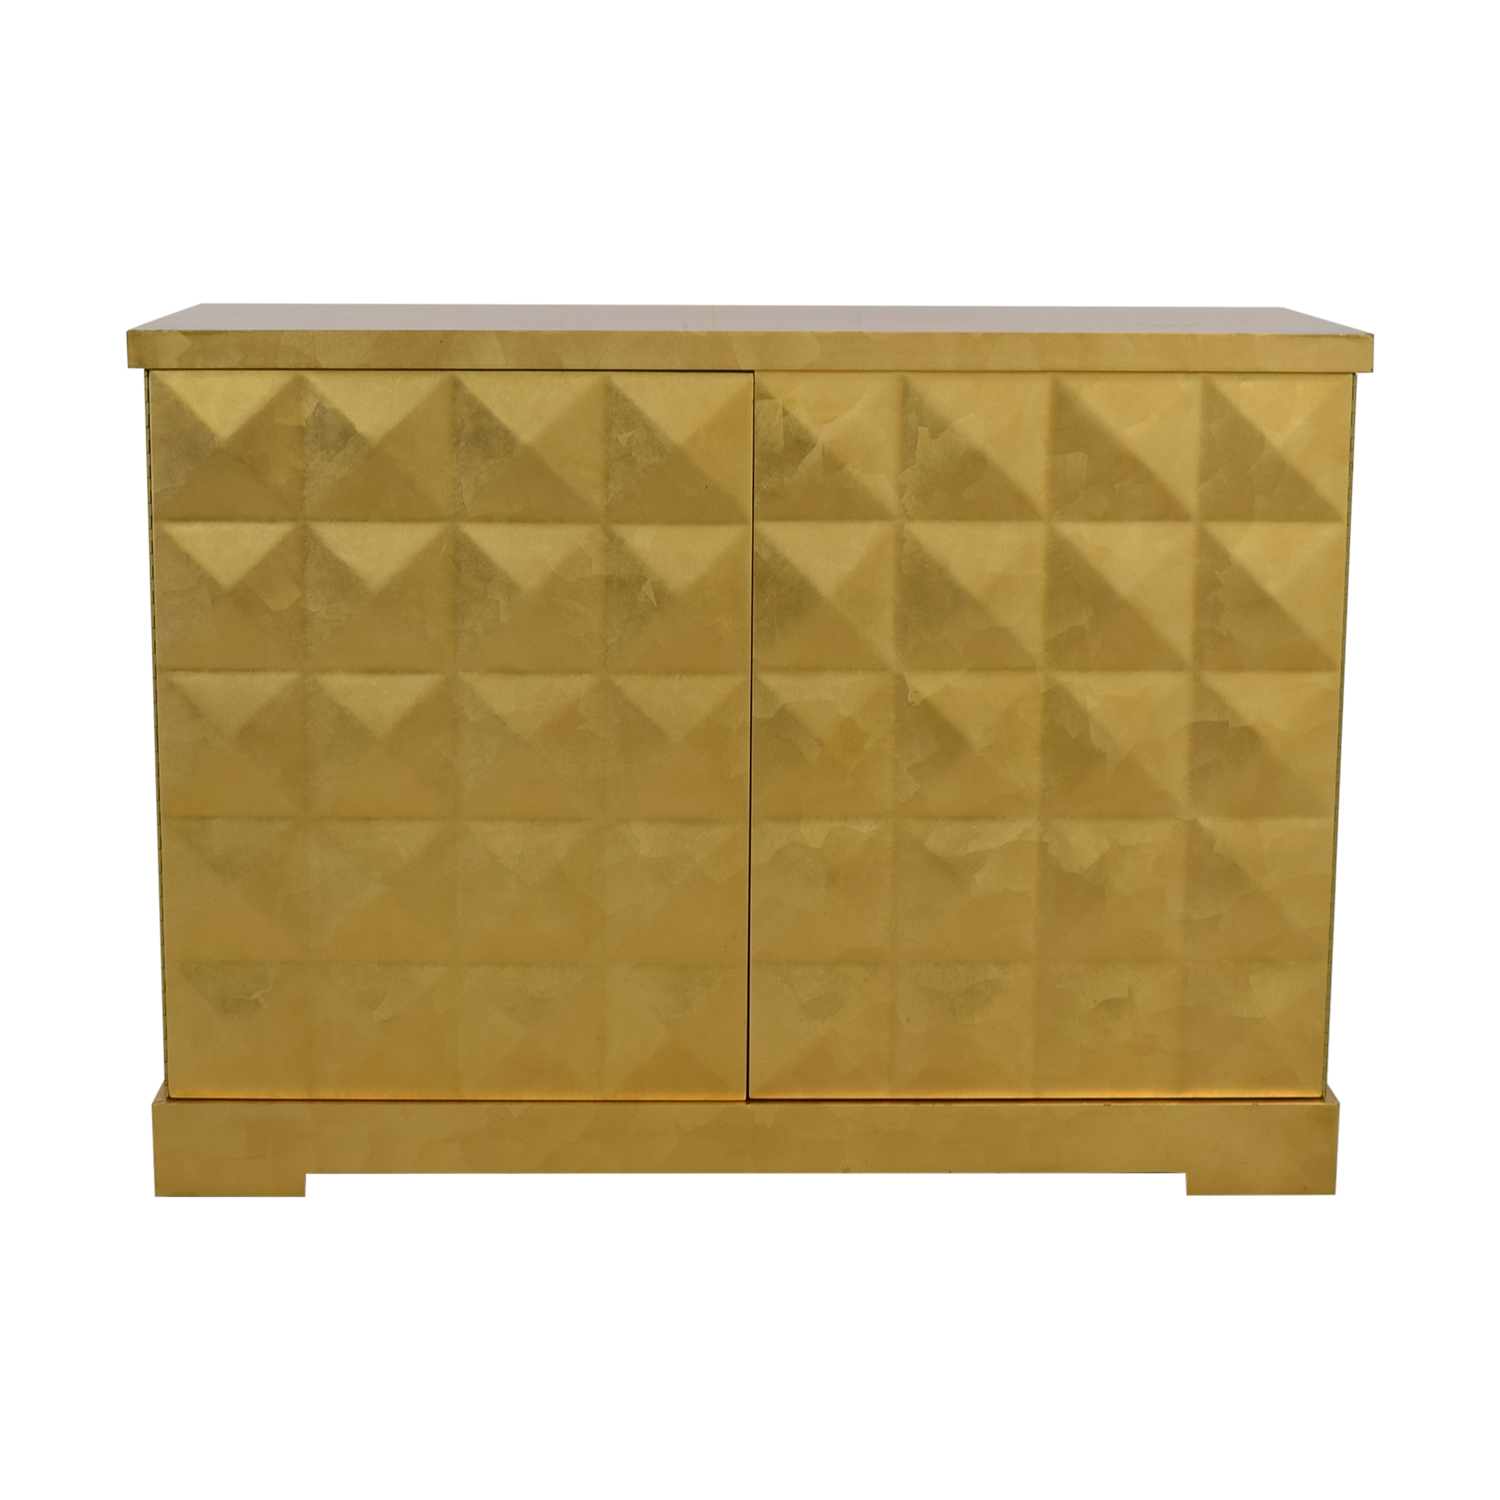 Barbara Barry for Baker Furniture Gold Leaf Cabinet / Storage